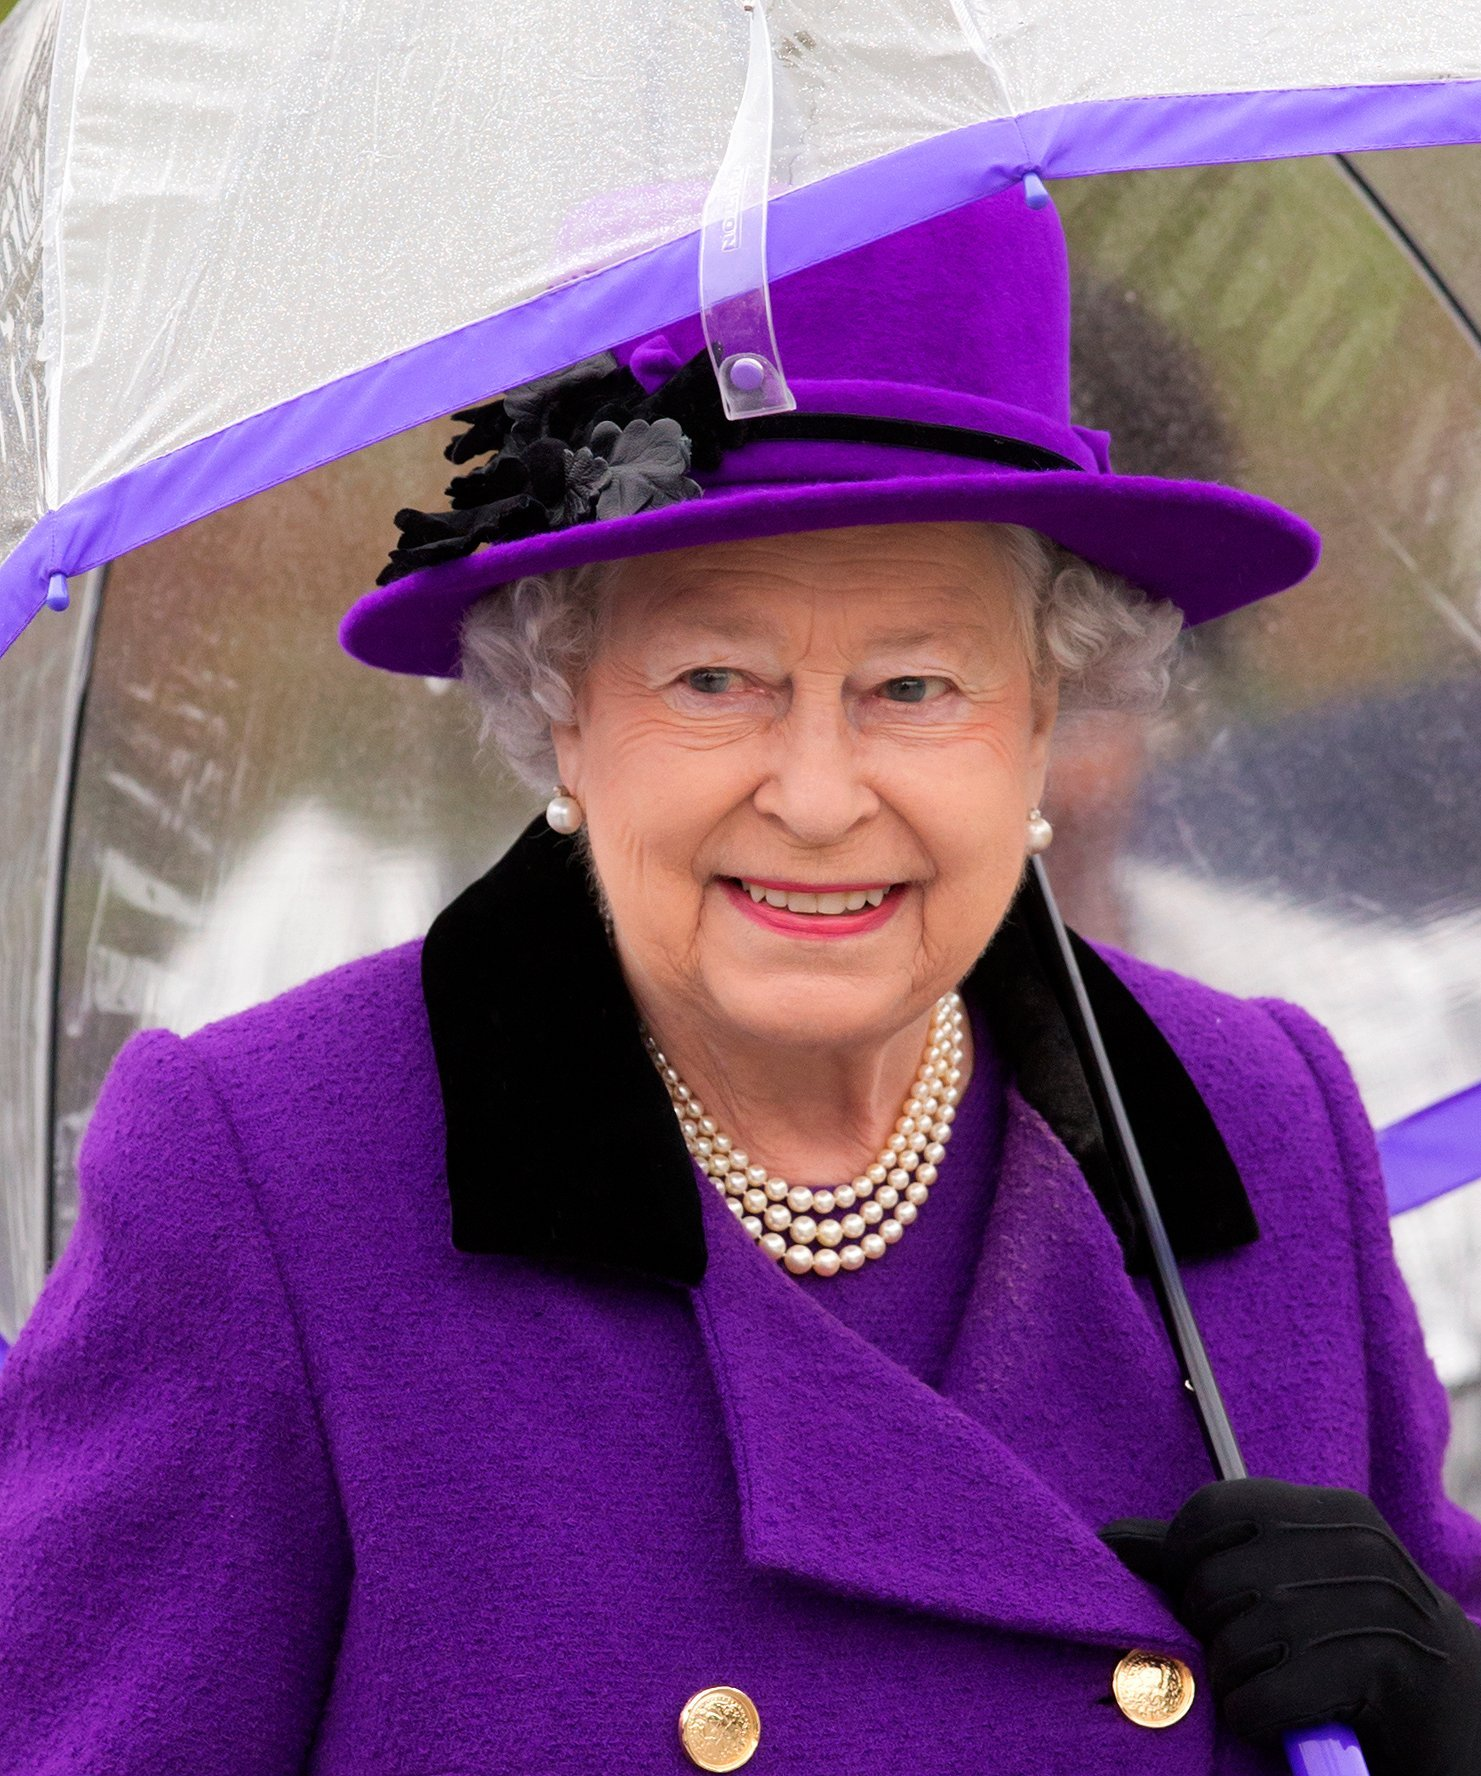 Queen Elizabeth II shelters under an umbrella as attends the opening of the newly developed Jubilee Gardens on October 25, 2012 | Photo: Getty Images